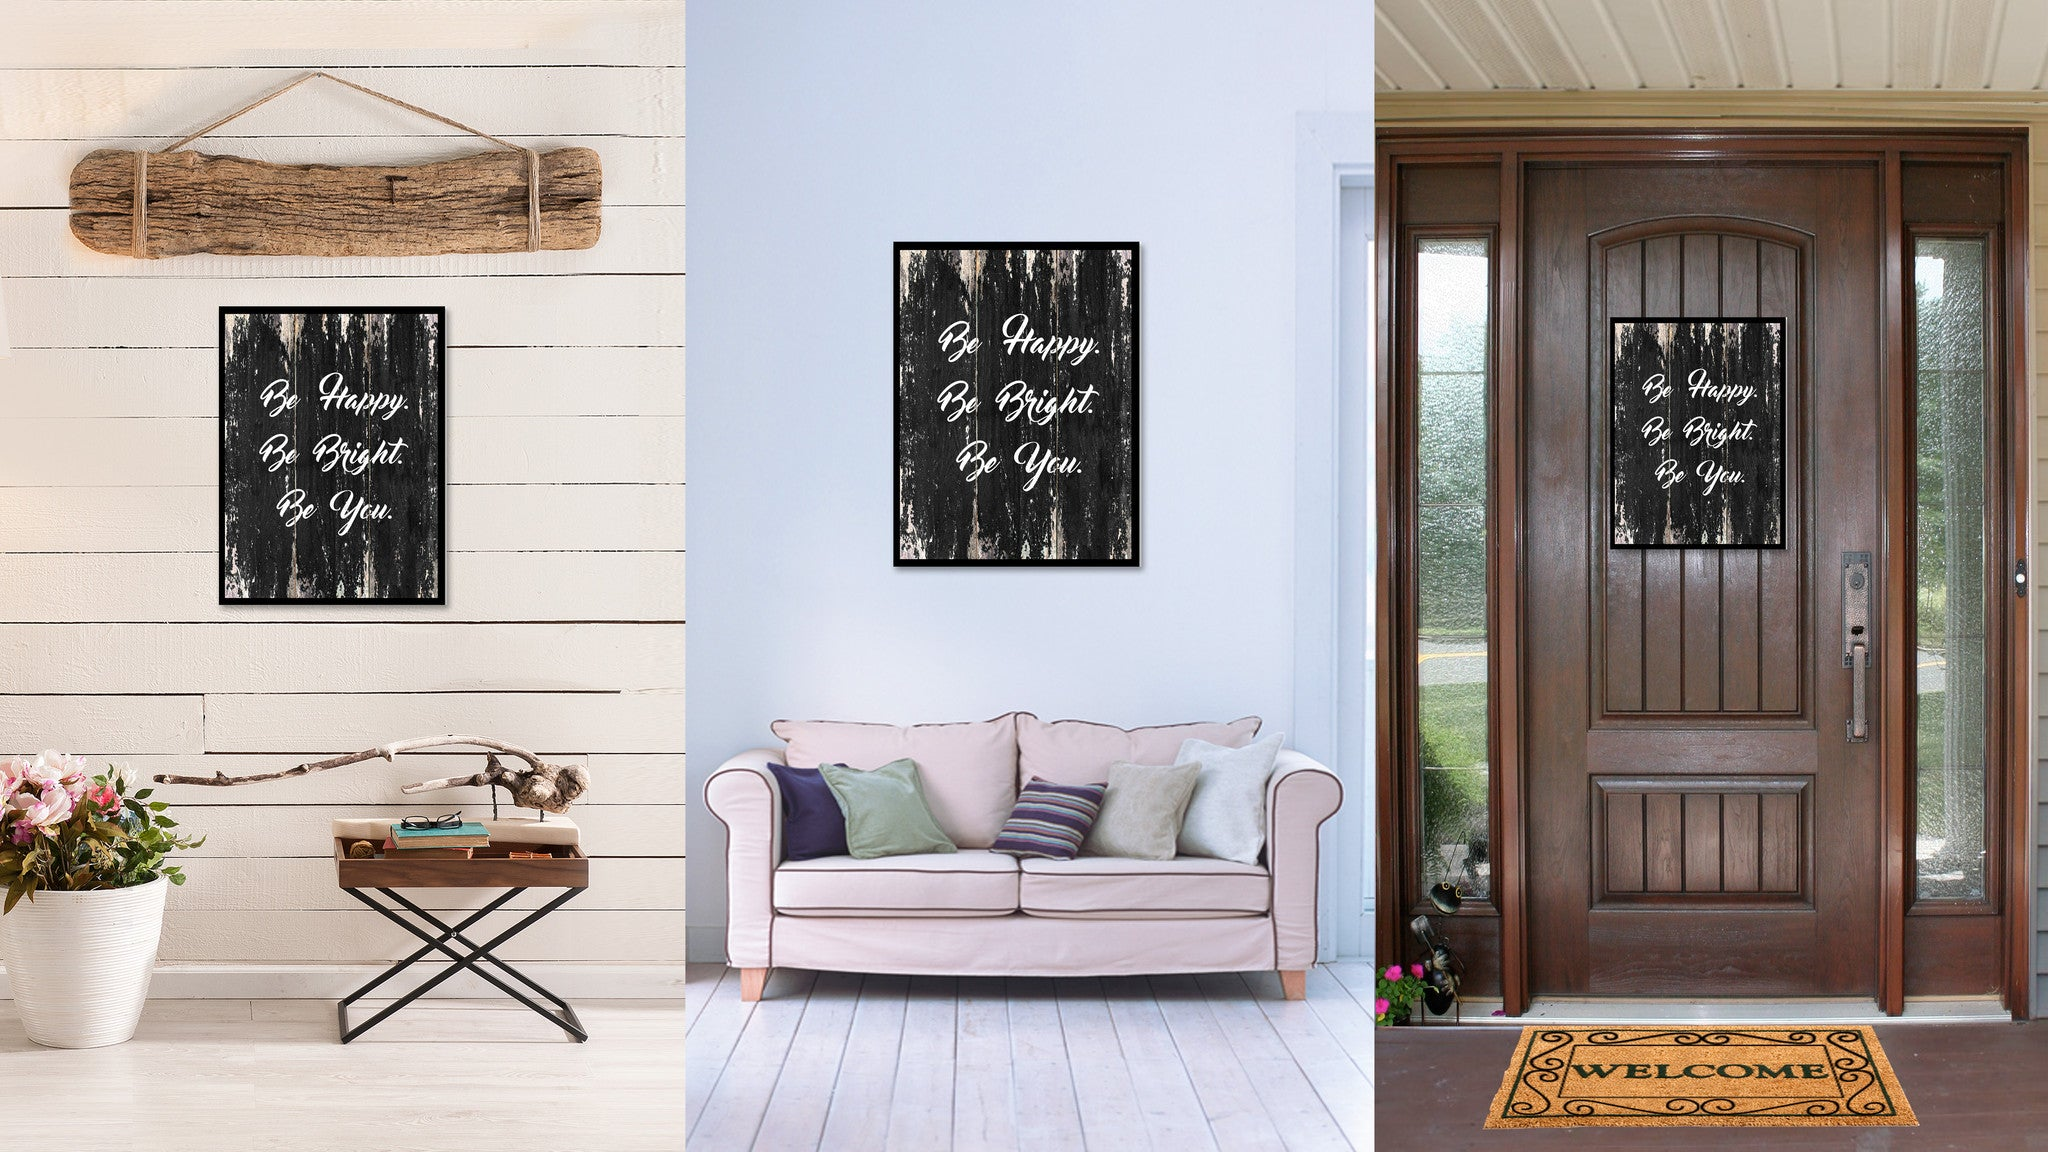 Be happy be bright be you Motivational Quote Saying Canvas Print with Picture Frame Home Decor Wall Art